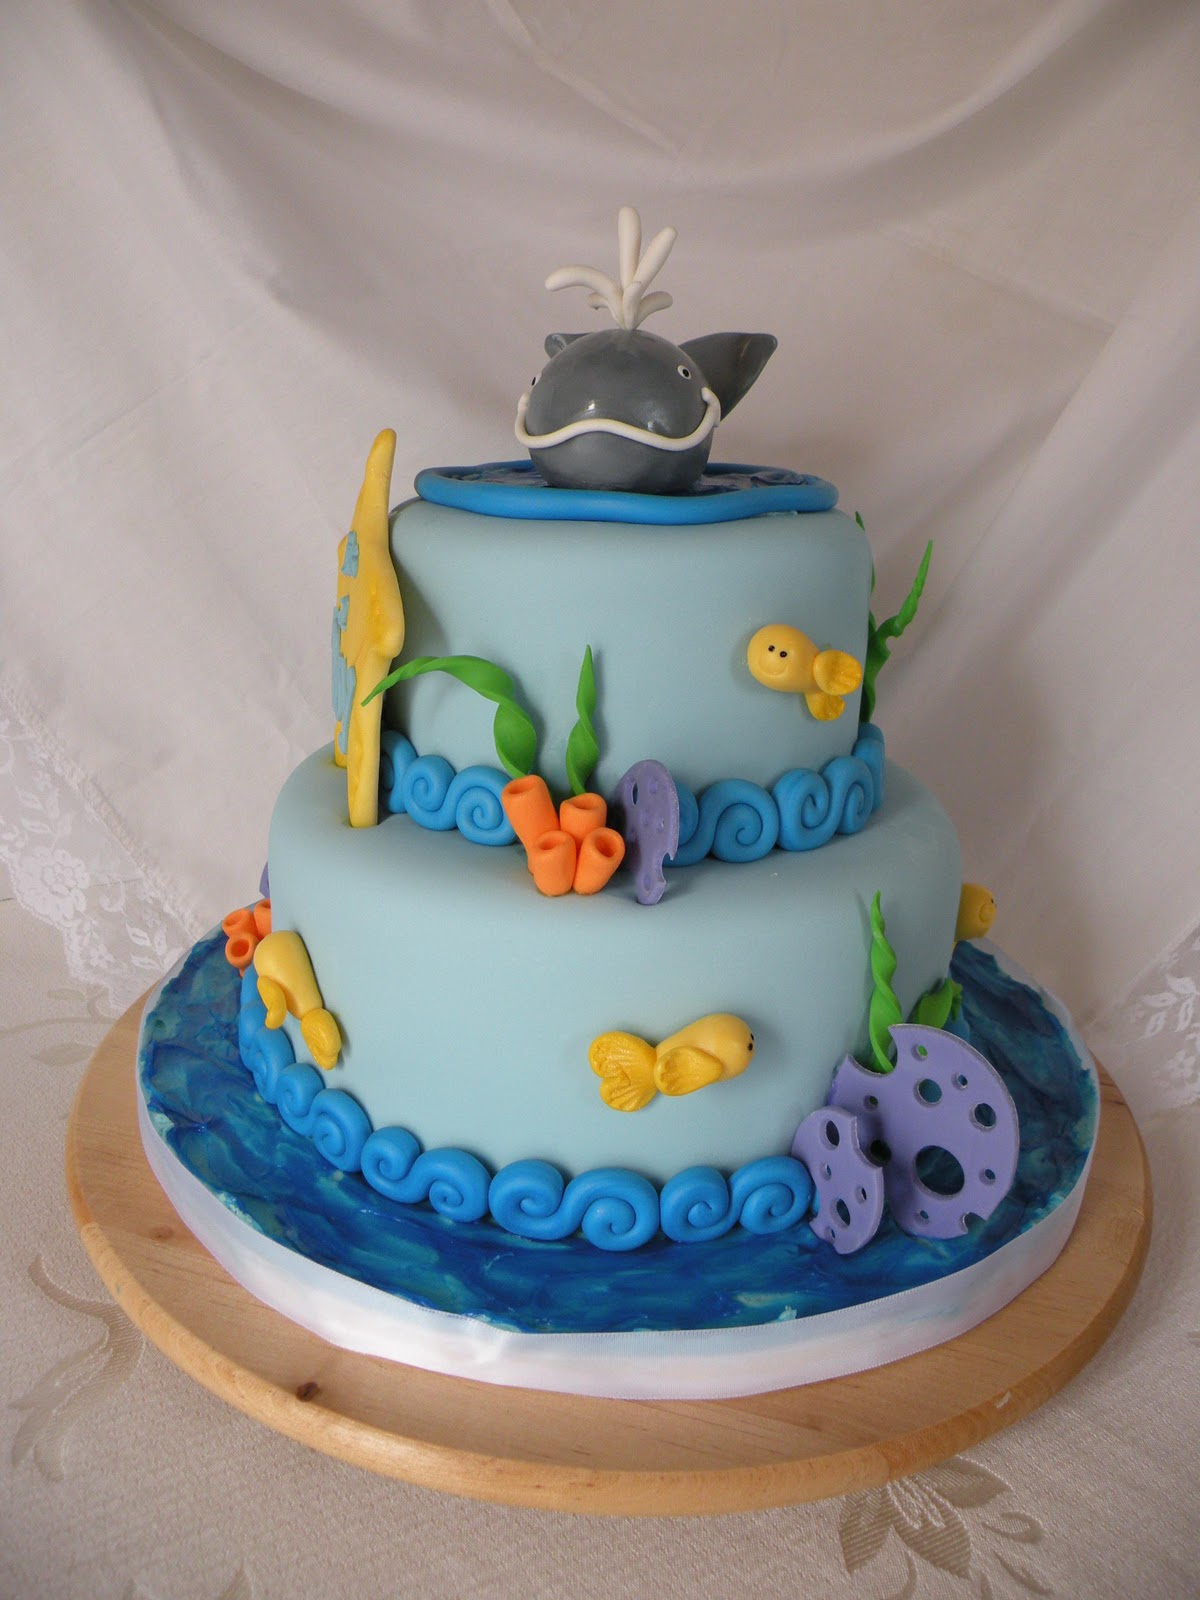 Teresa's Tasty Temptations: Whale Themed Baby Shower Cake